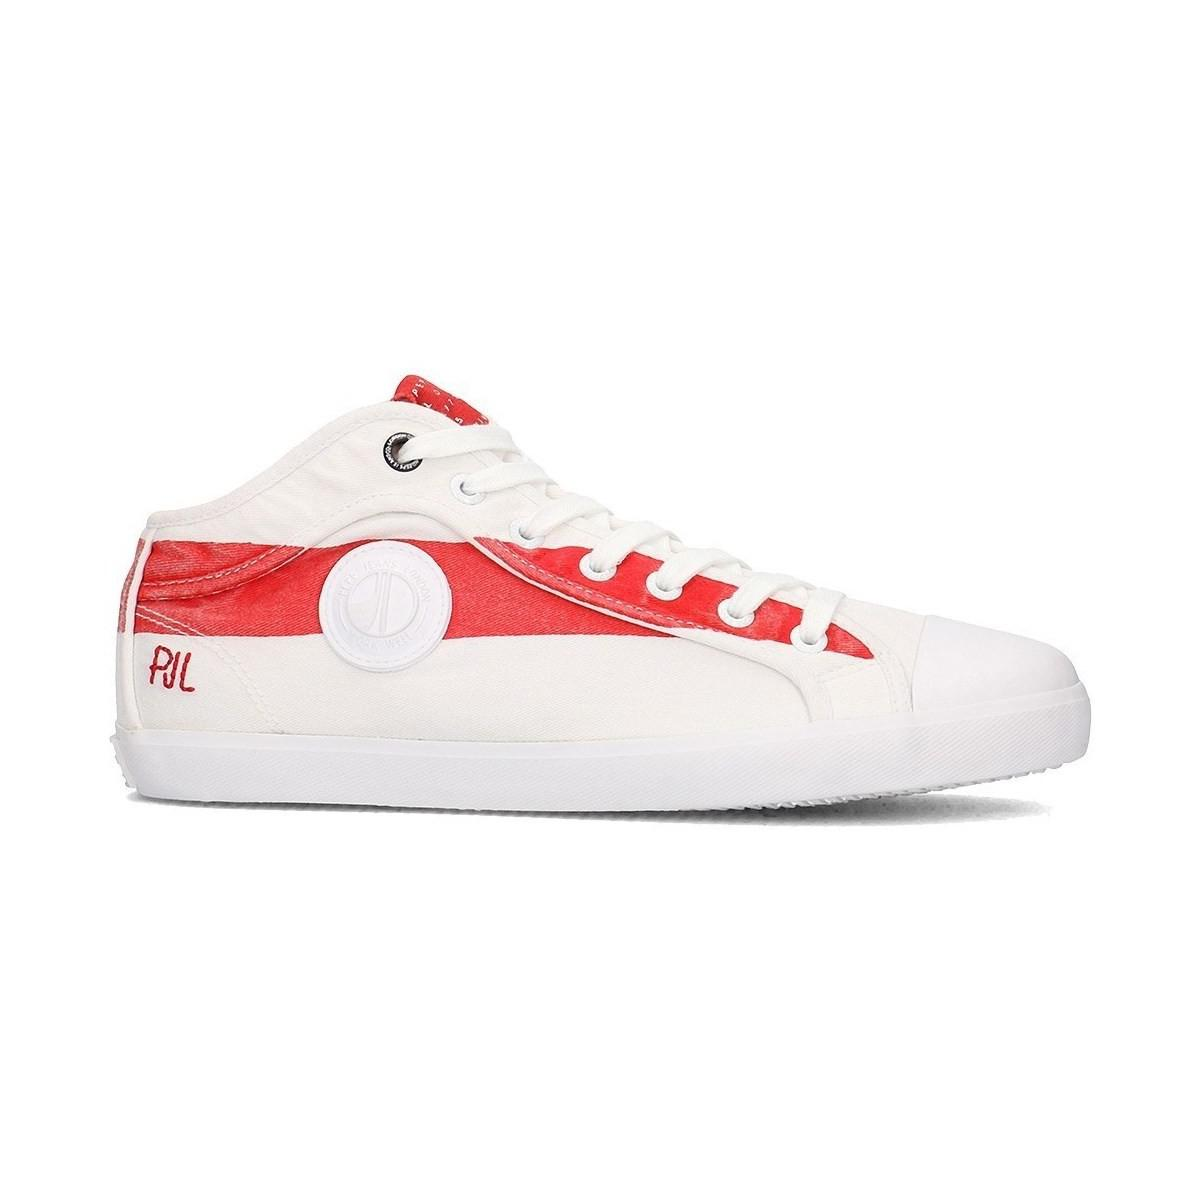 Pepe Jeans IN 45 - Trainers - red aQNKbuIBWG